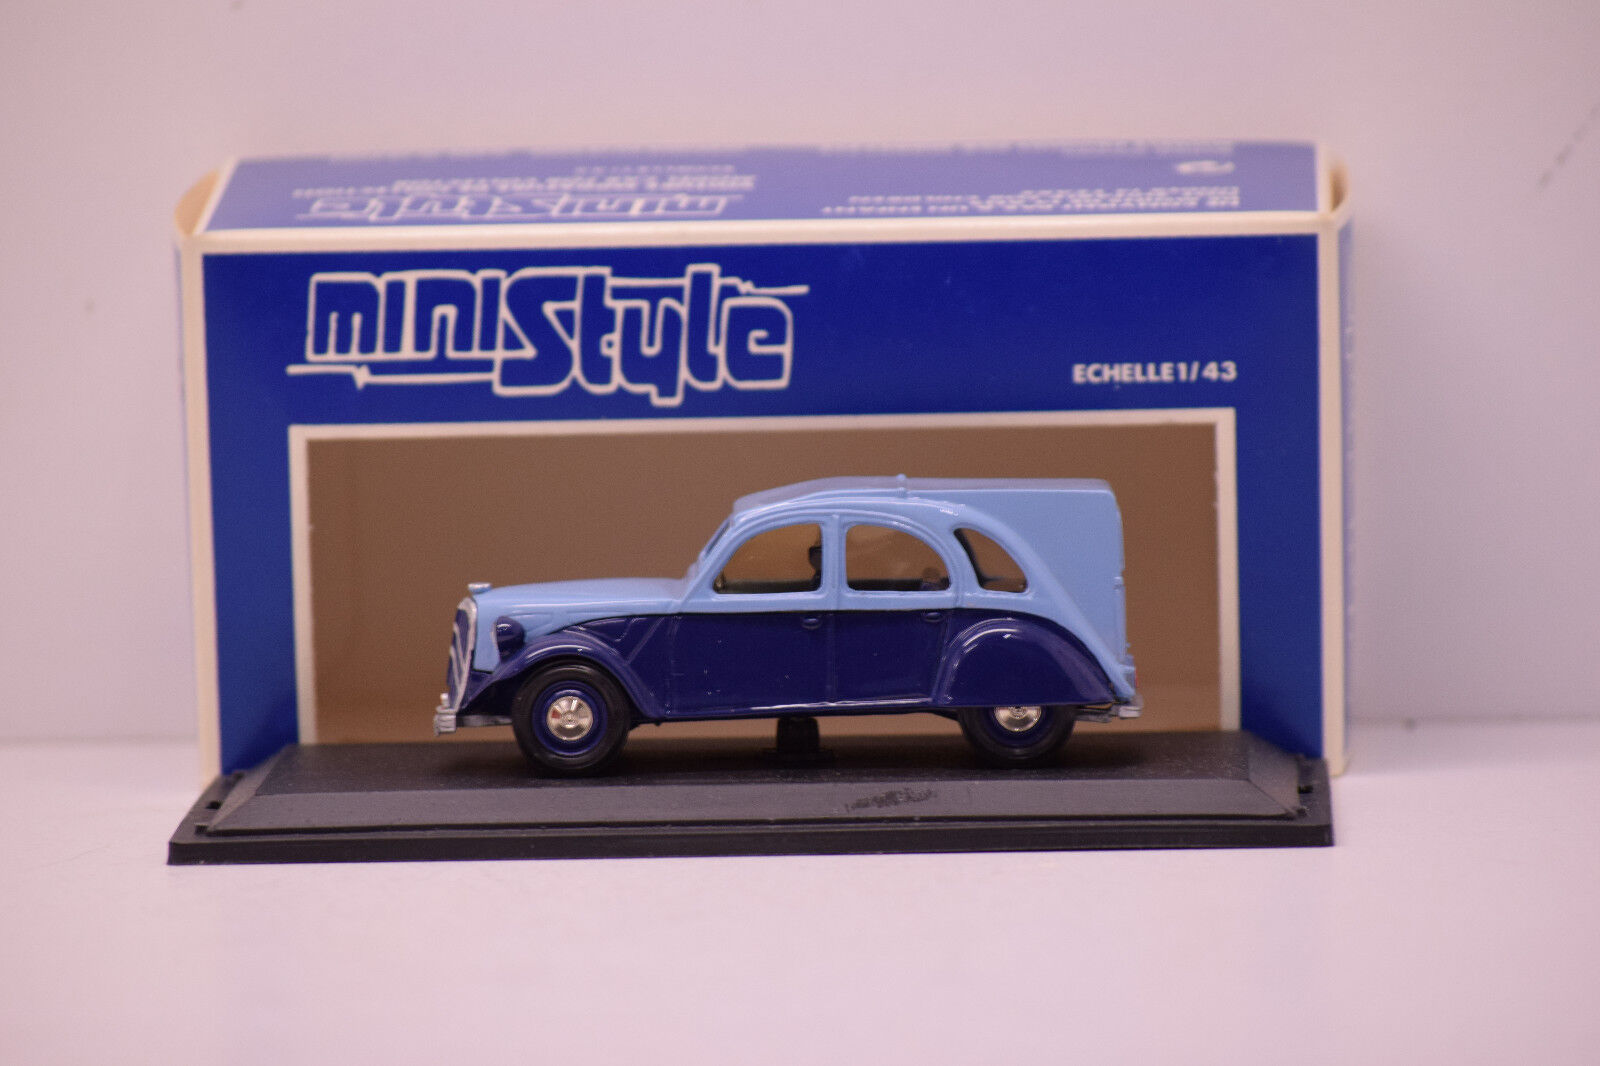 Citroen citroën traktion gallischen ministyle 1   43 new in box